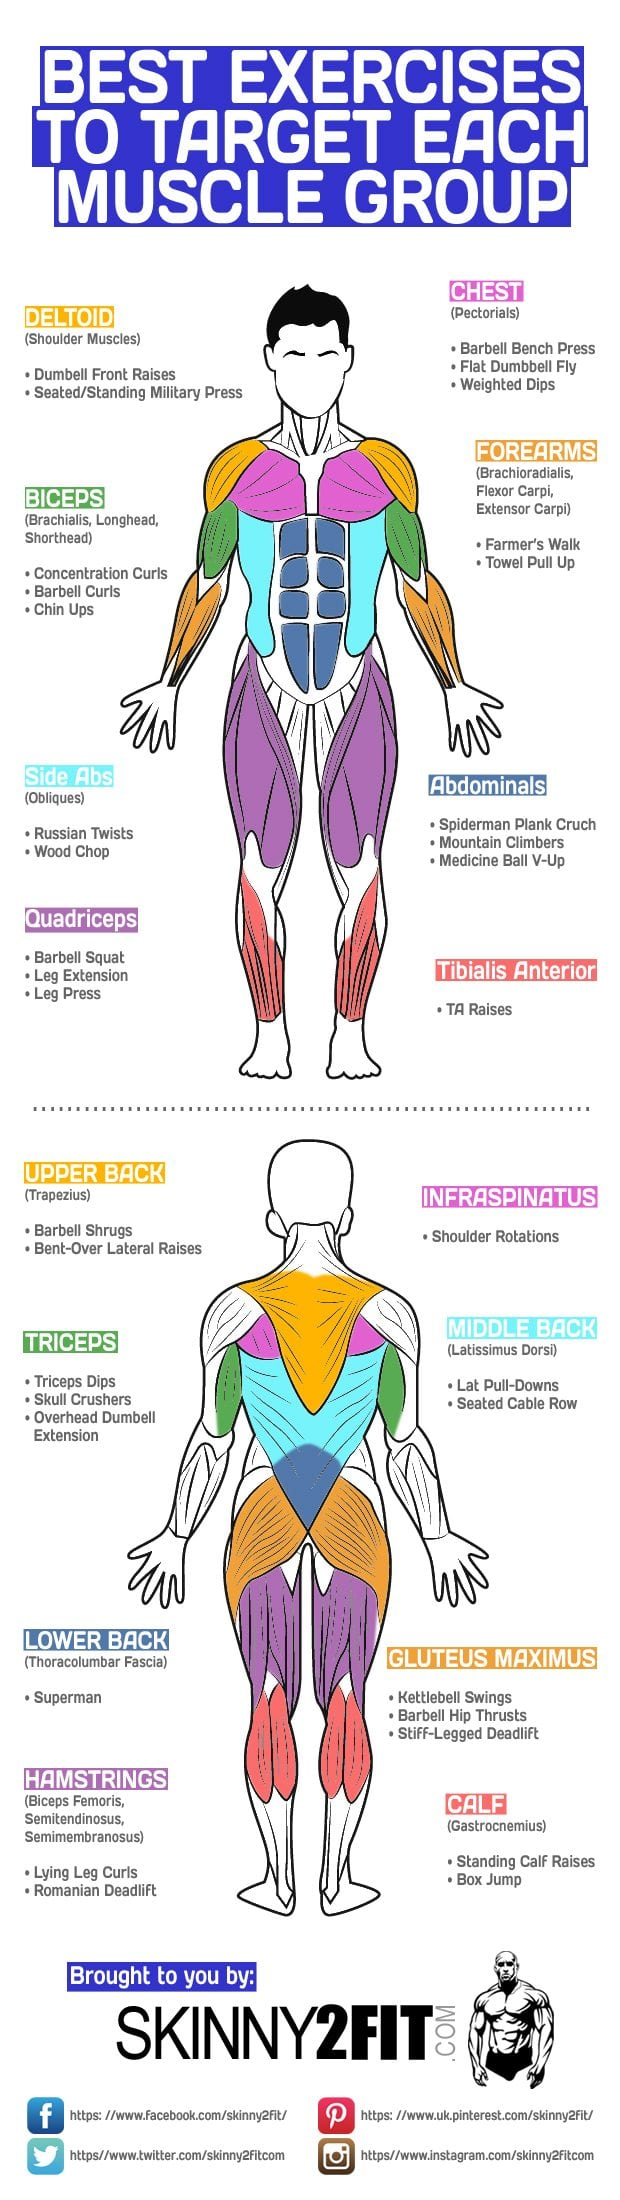 Target Each Muscle Group